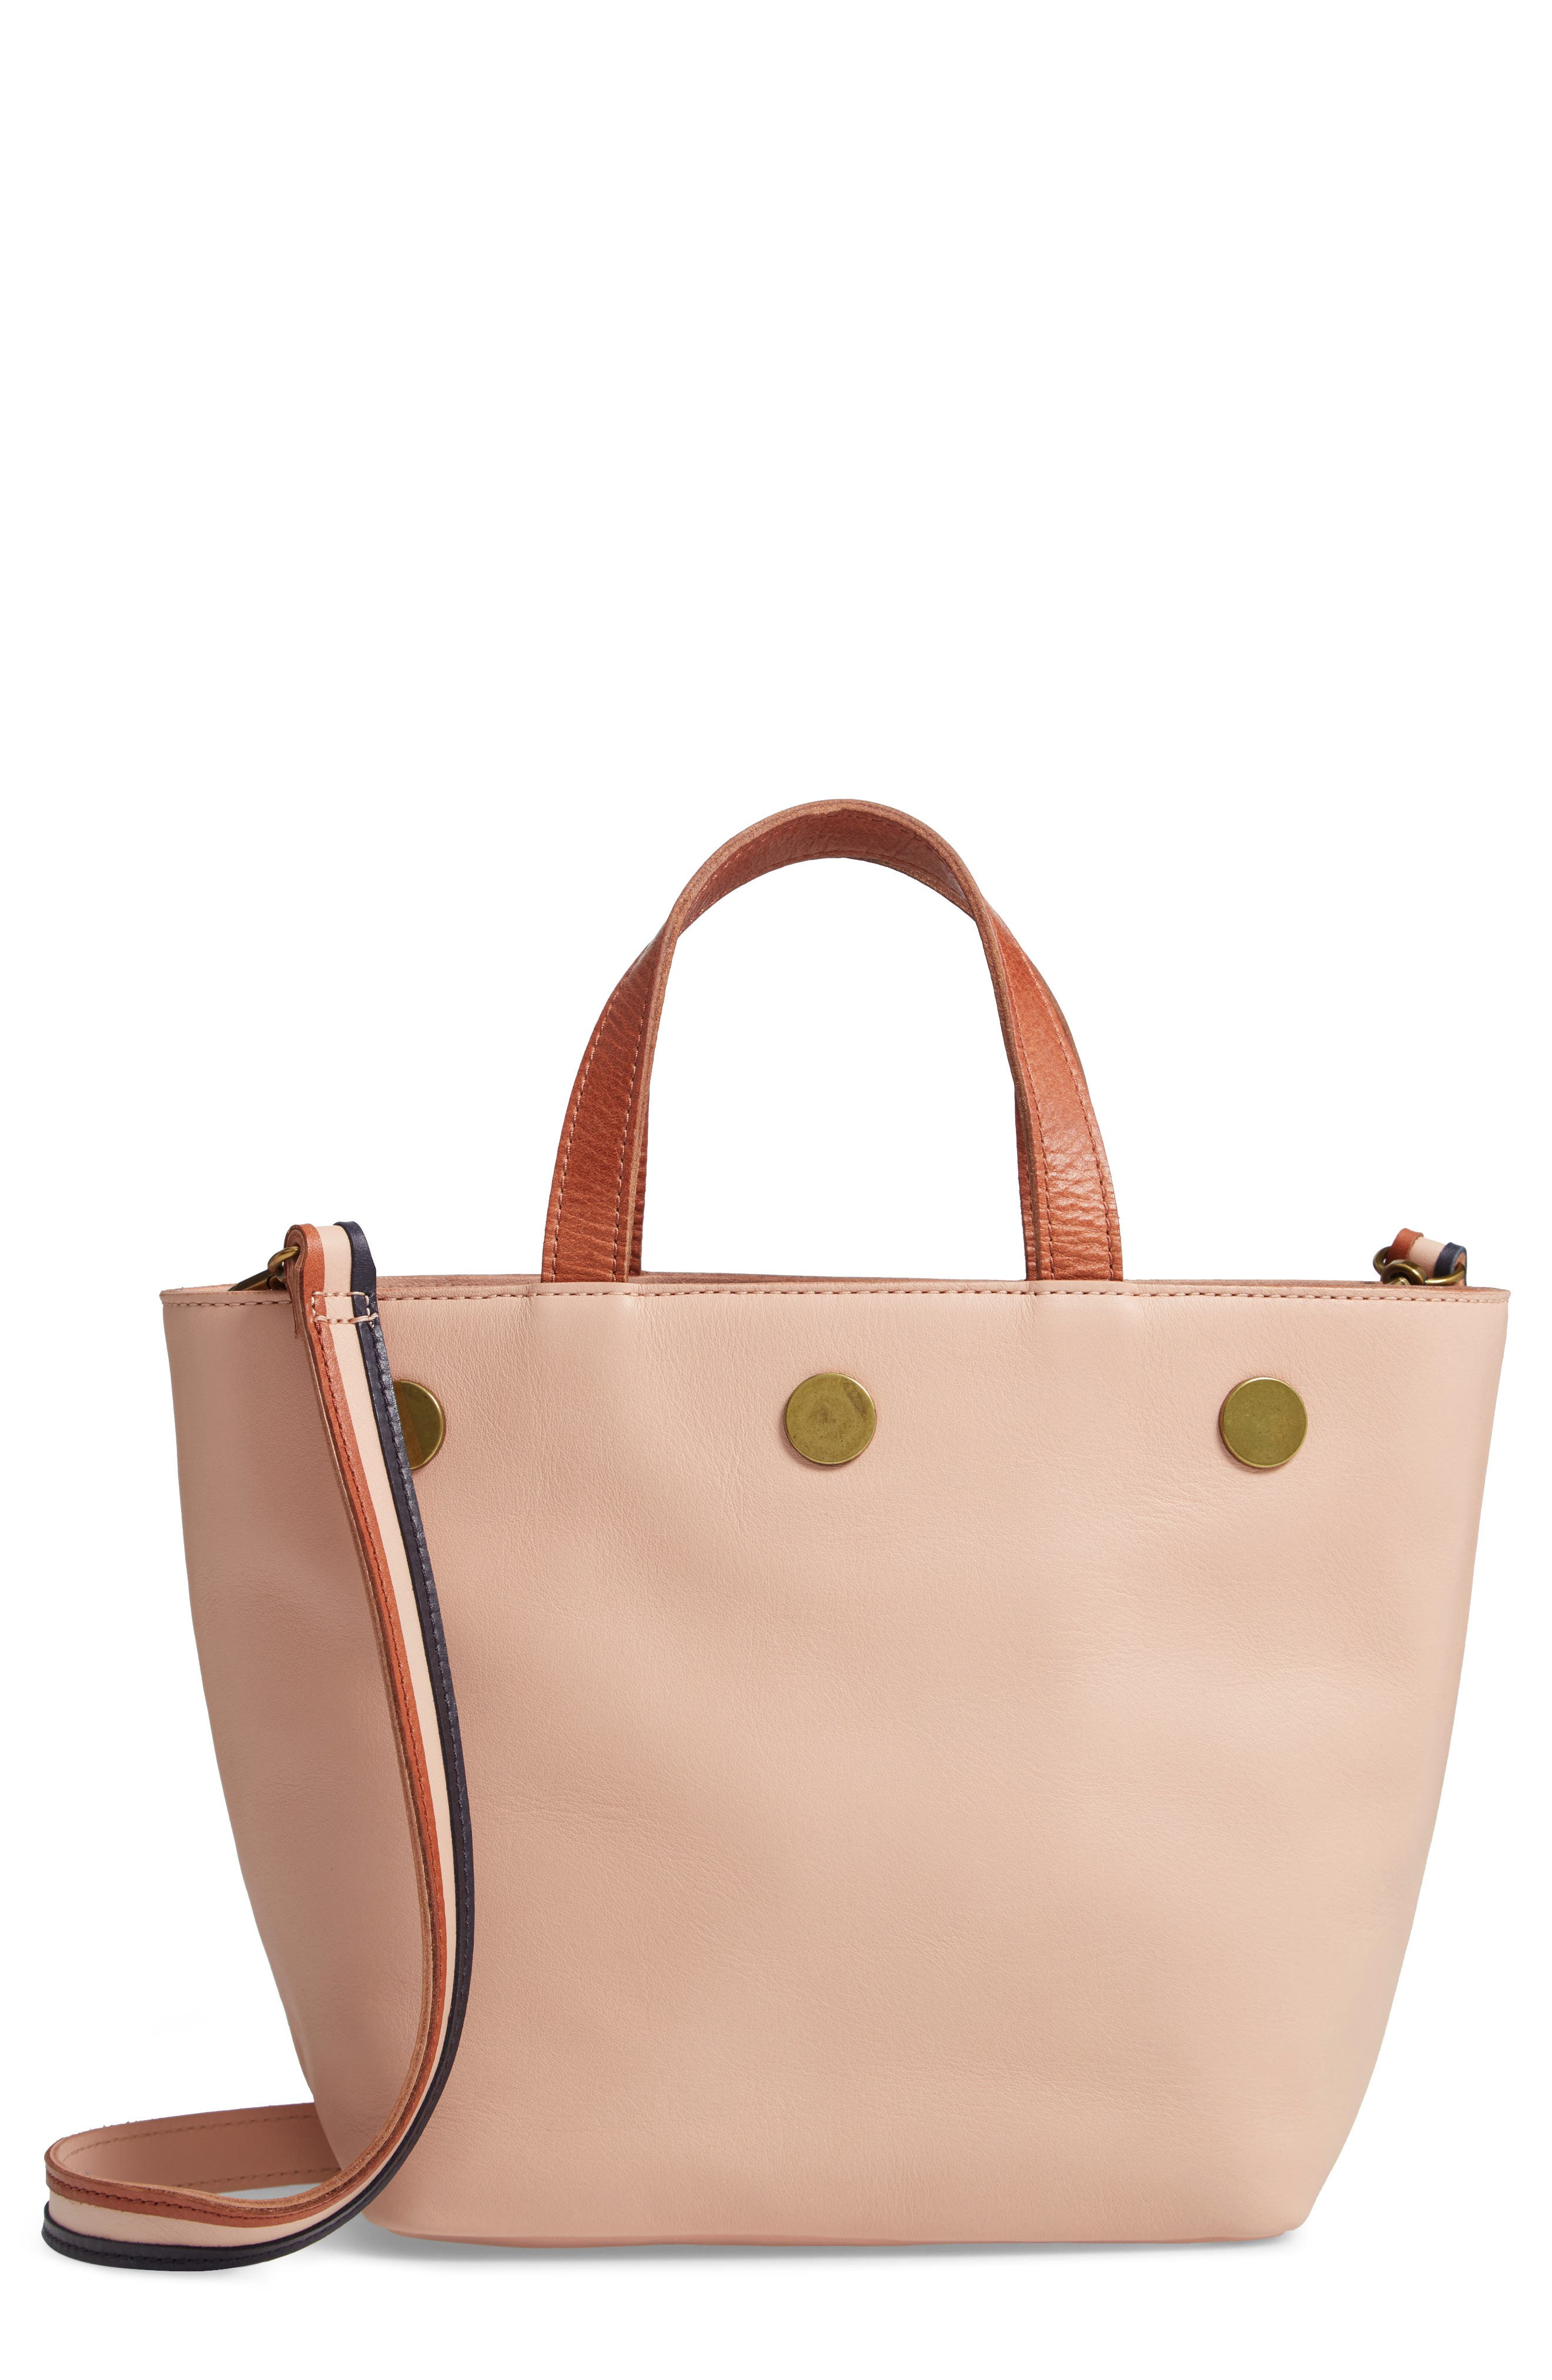 Leather Top Handle Bag,                             Main thumbnail 1, color,                             SHEER PINK